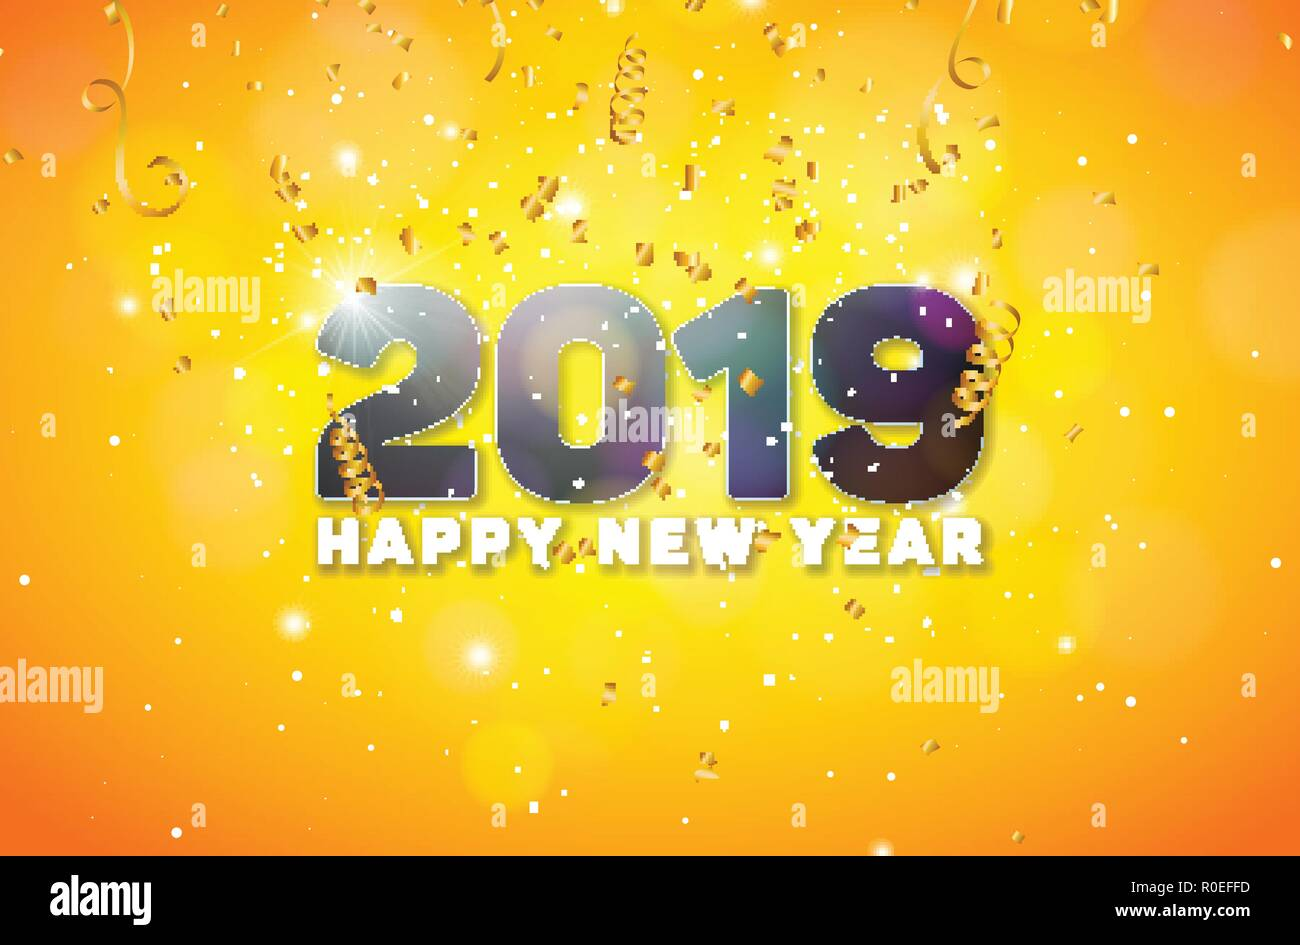 Happy New Year 2019 Illustration With 3d Number On Shiny Yellow